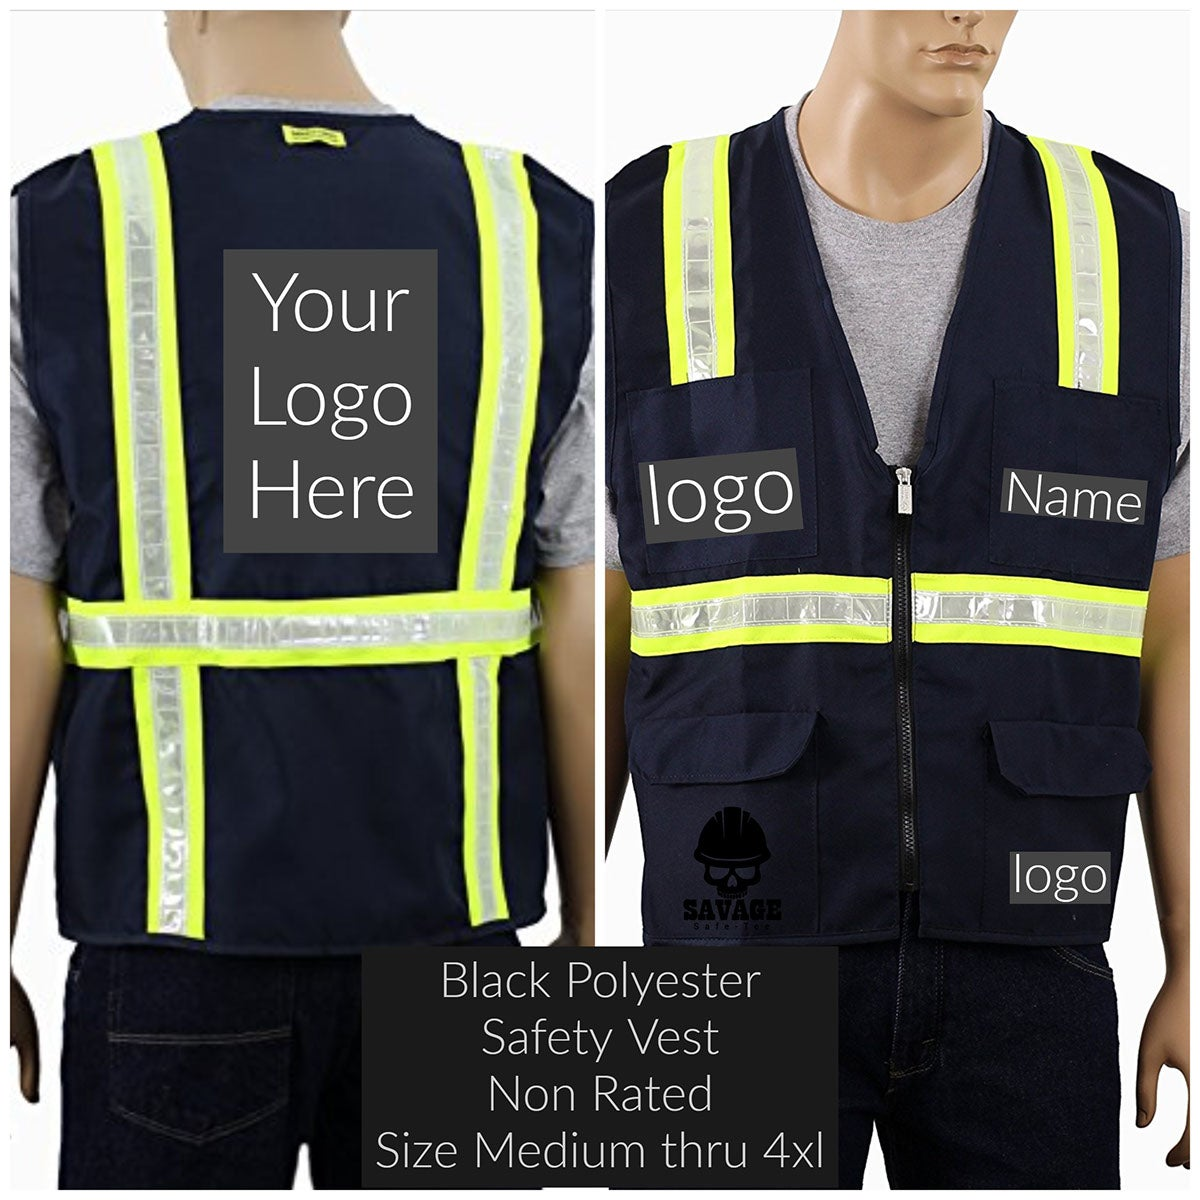 Black polyester custom safety vest